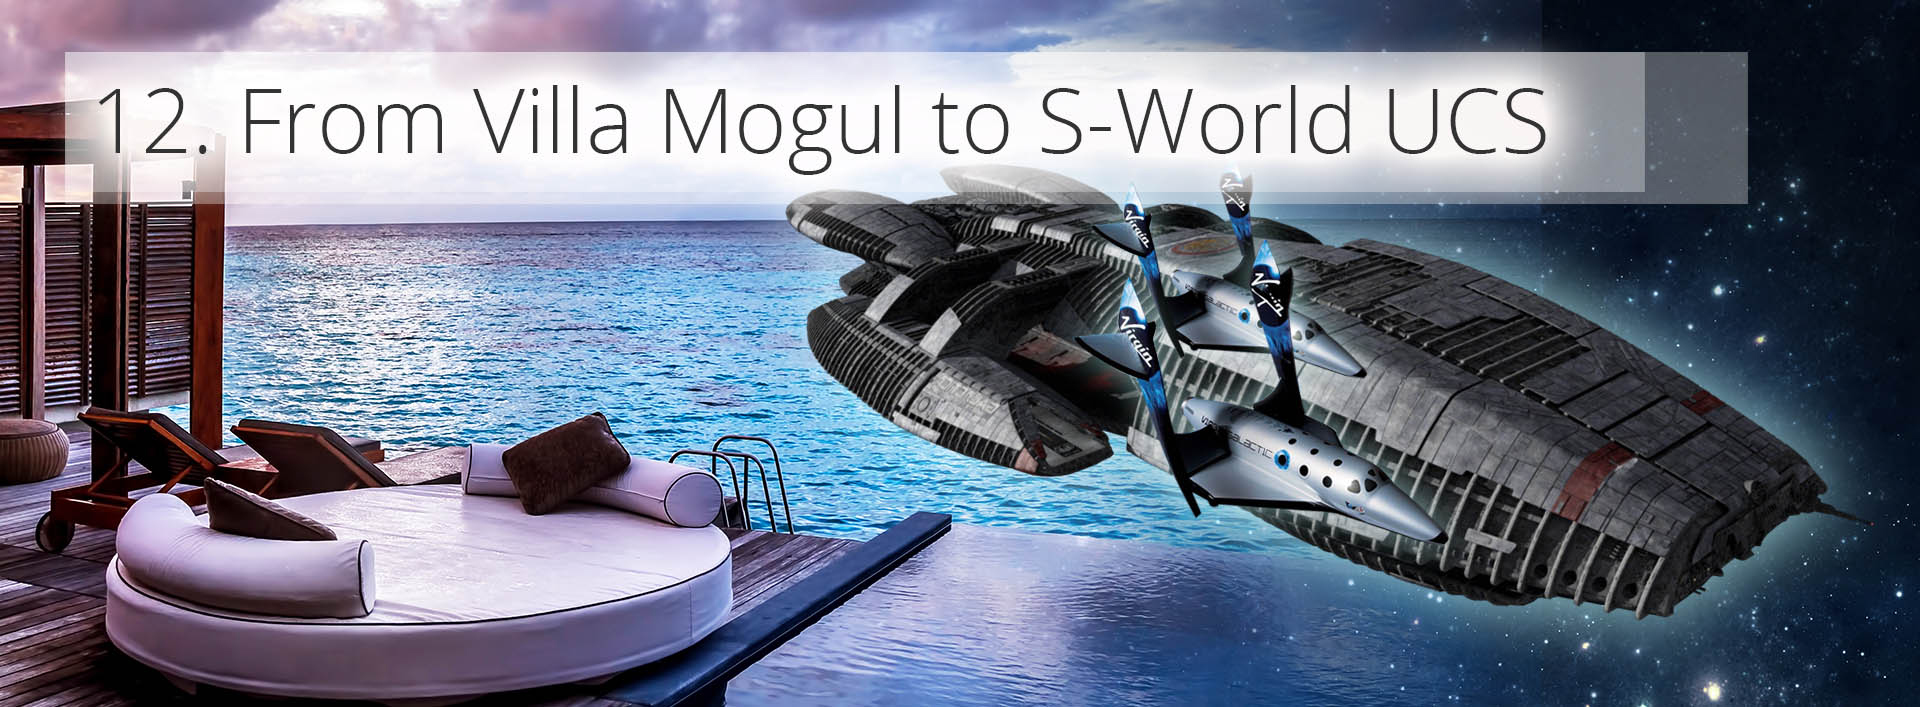 From Villa Mogul to S-World UCS